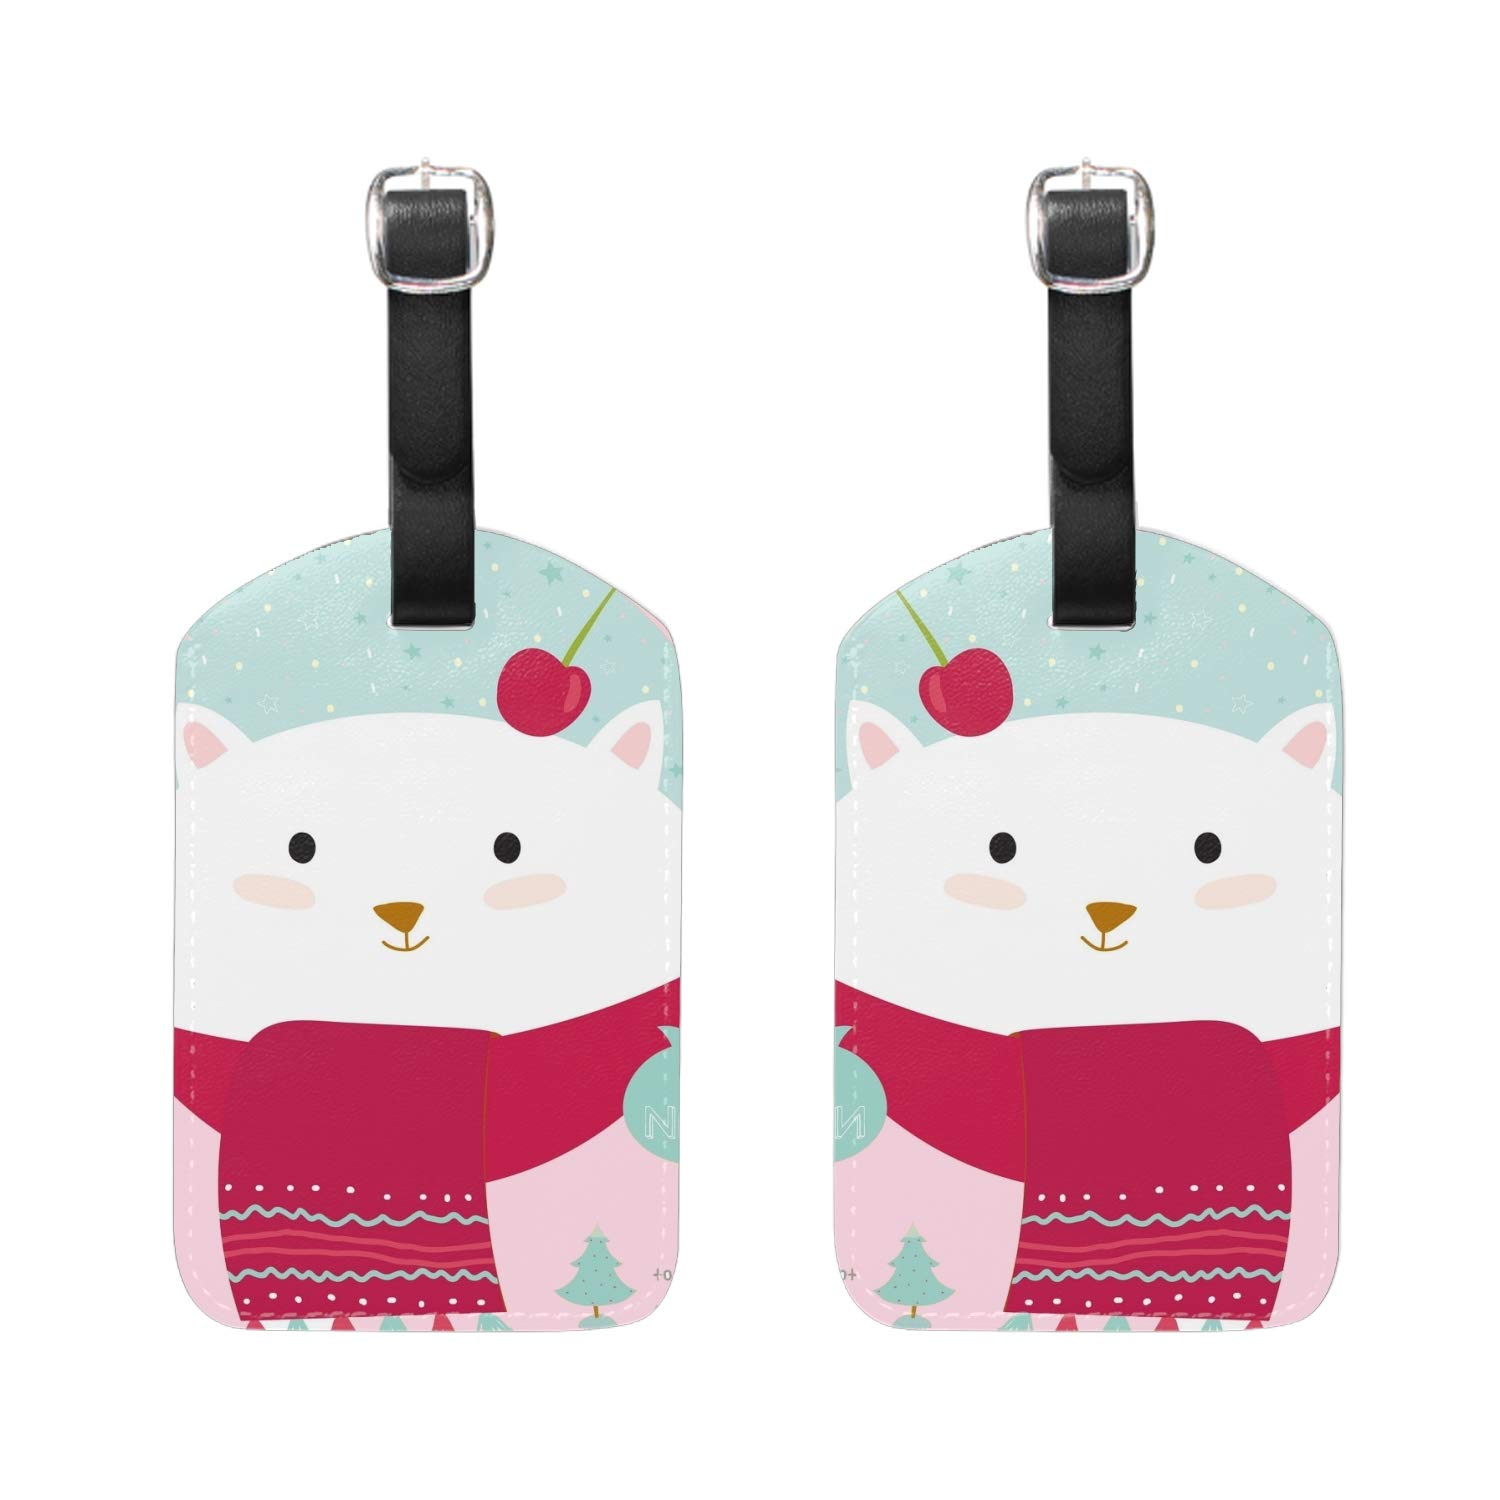 Black White Pattern Print Luggage Identifiers with Strap Closure